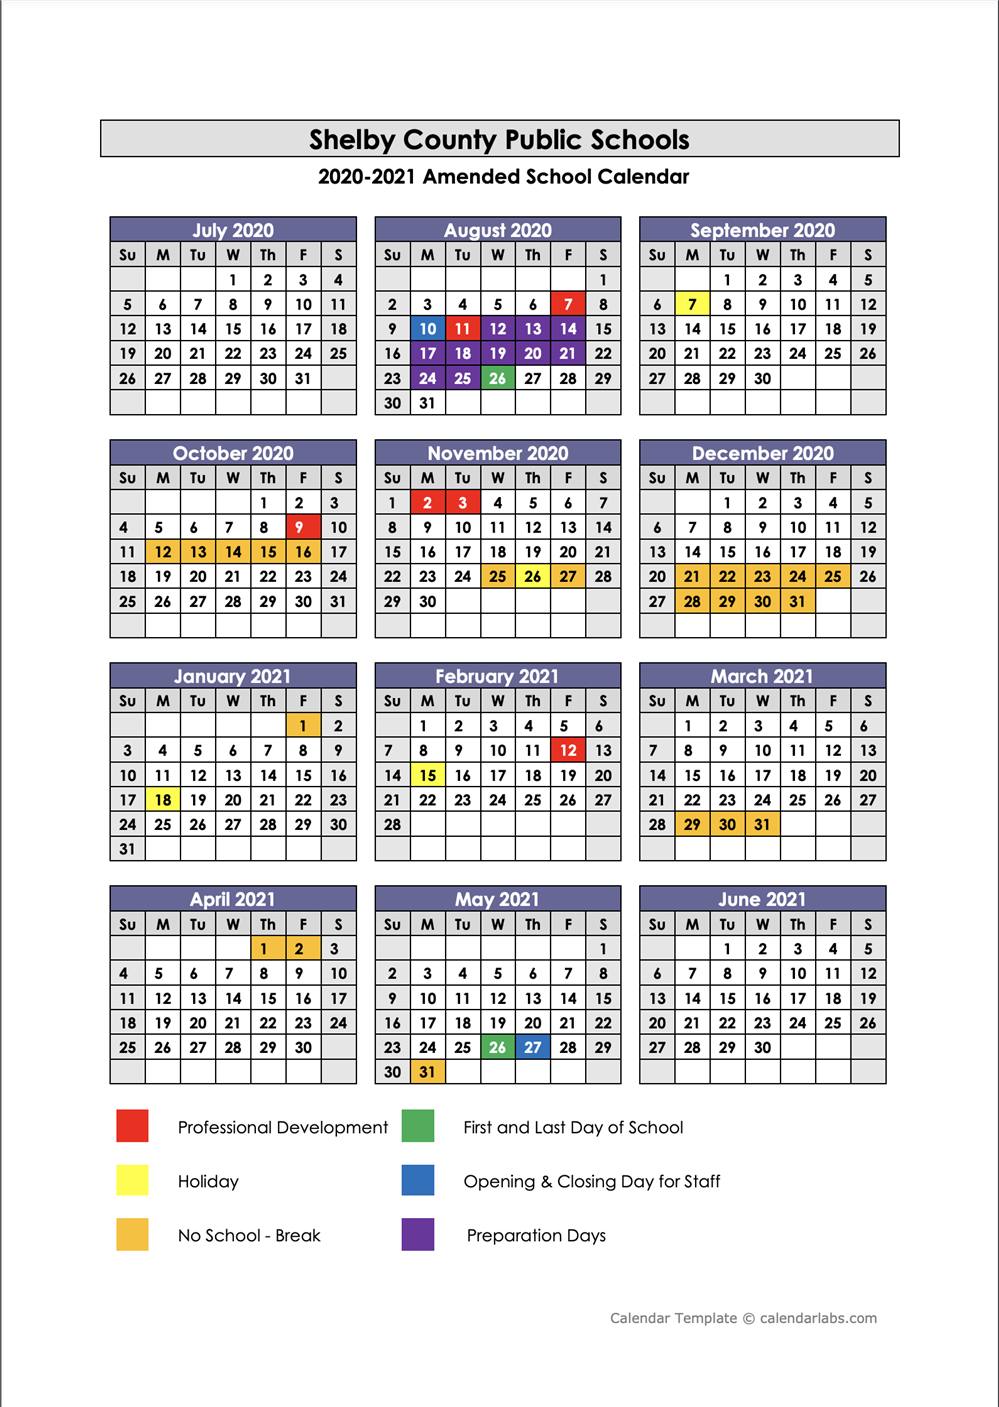 2020 - 2021 SCPS Amended School Calendar